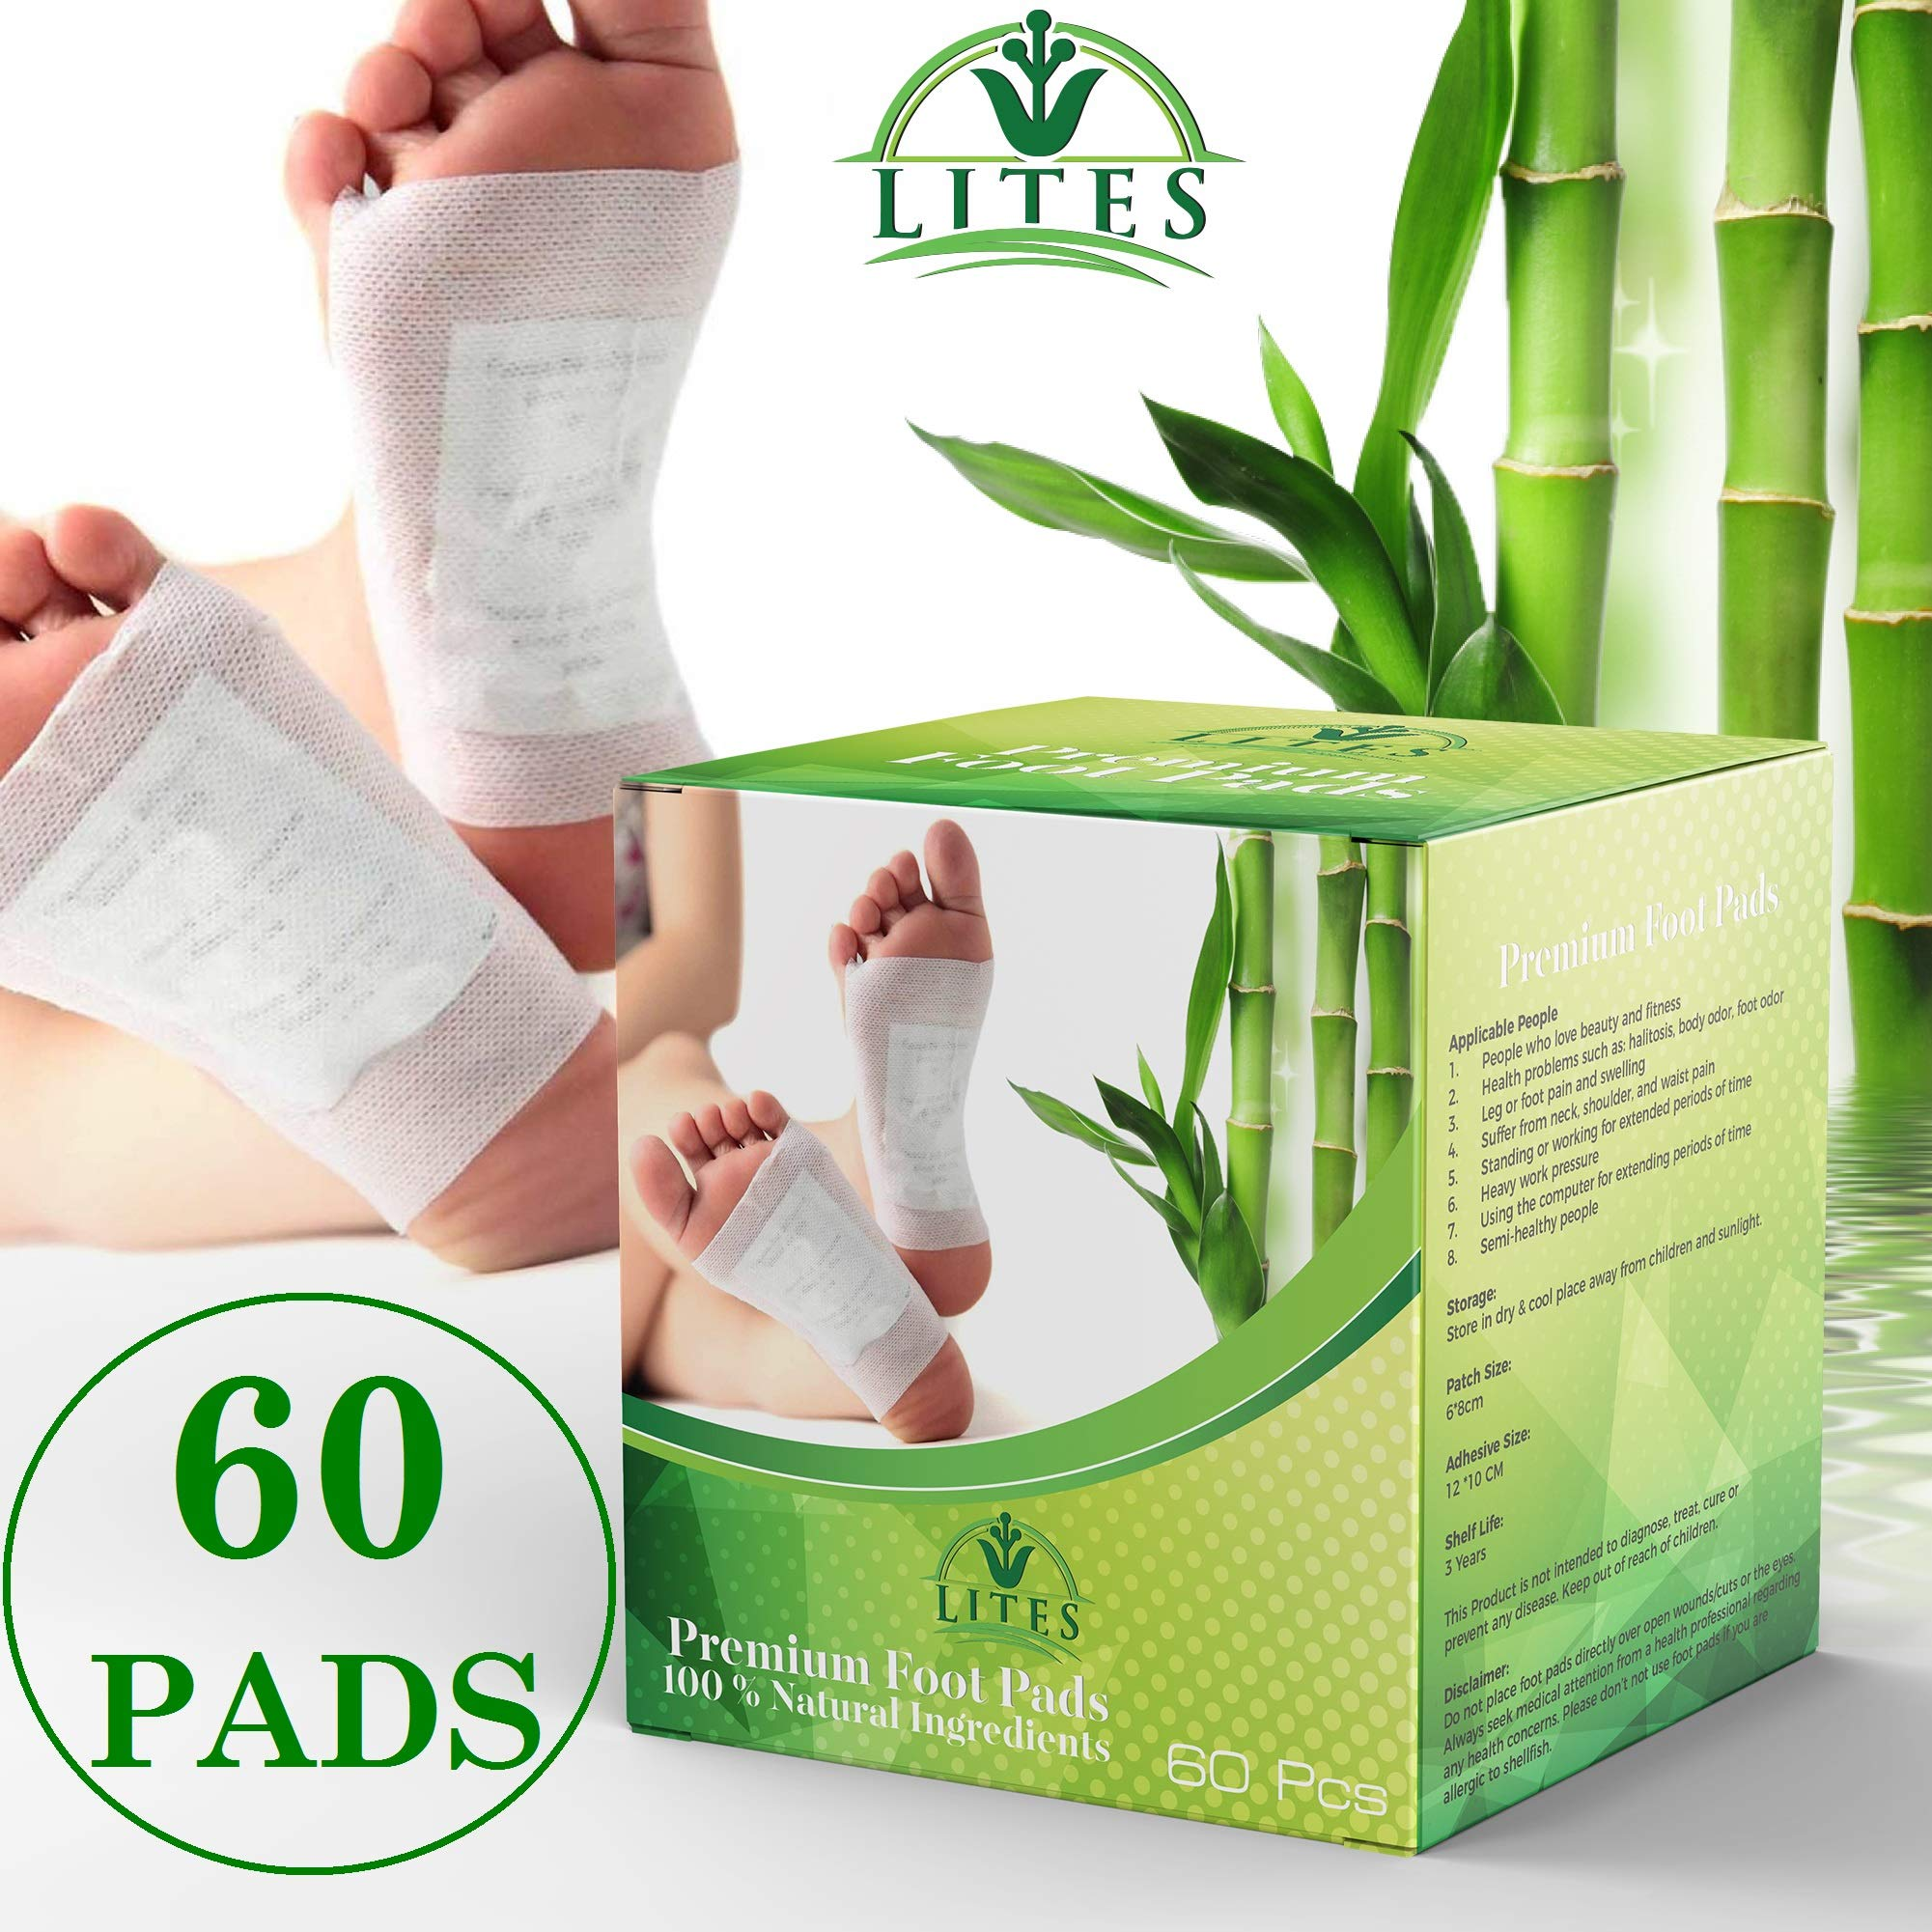 LITES Foot Pads - (60pcs) Premium Foot Pad, Relieve Stress | Organic & Natural Foot Pad | Sleep Better by Lites